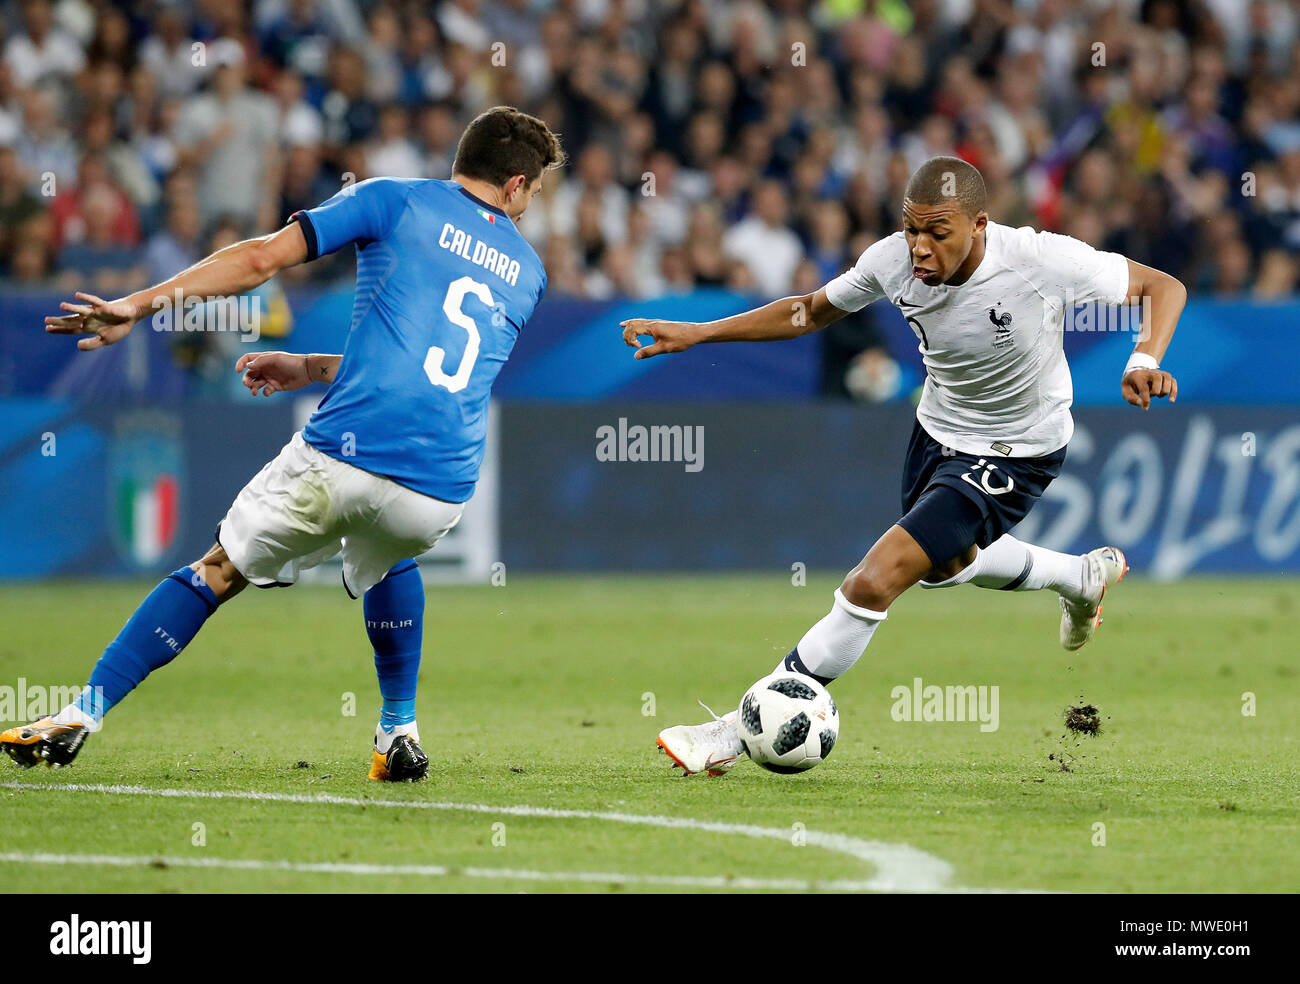 Nice, France.  1st June, 2018. Kylian Mbappe (R) of France competes with Mattia Caldara of Italy during a World Cup warm-up in Nice, France on June 1, 2018. France won 3-1. Credit: Federico Simoni/Xinhua/Alamy Live News - Stock Image